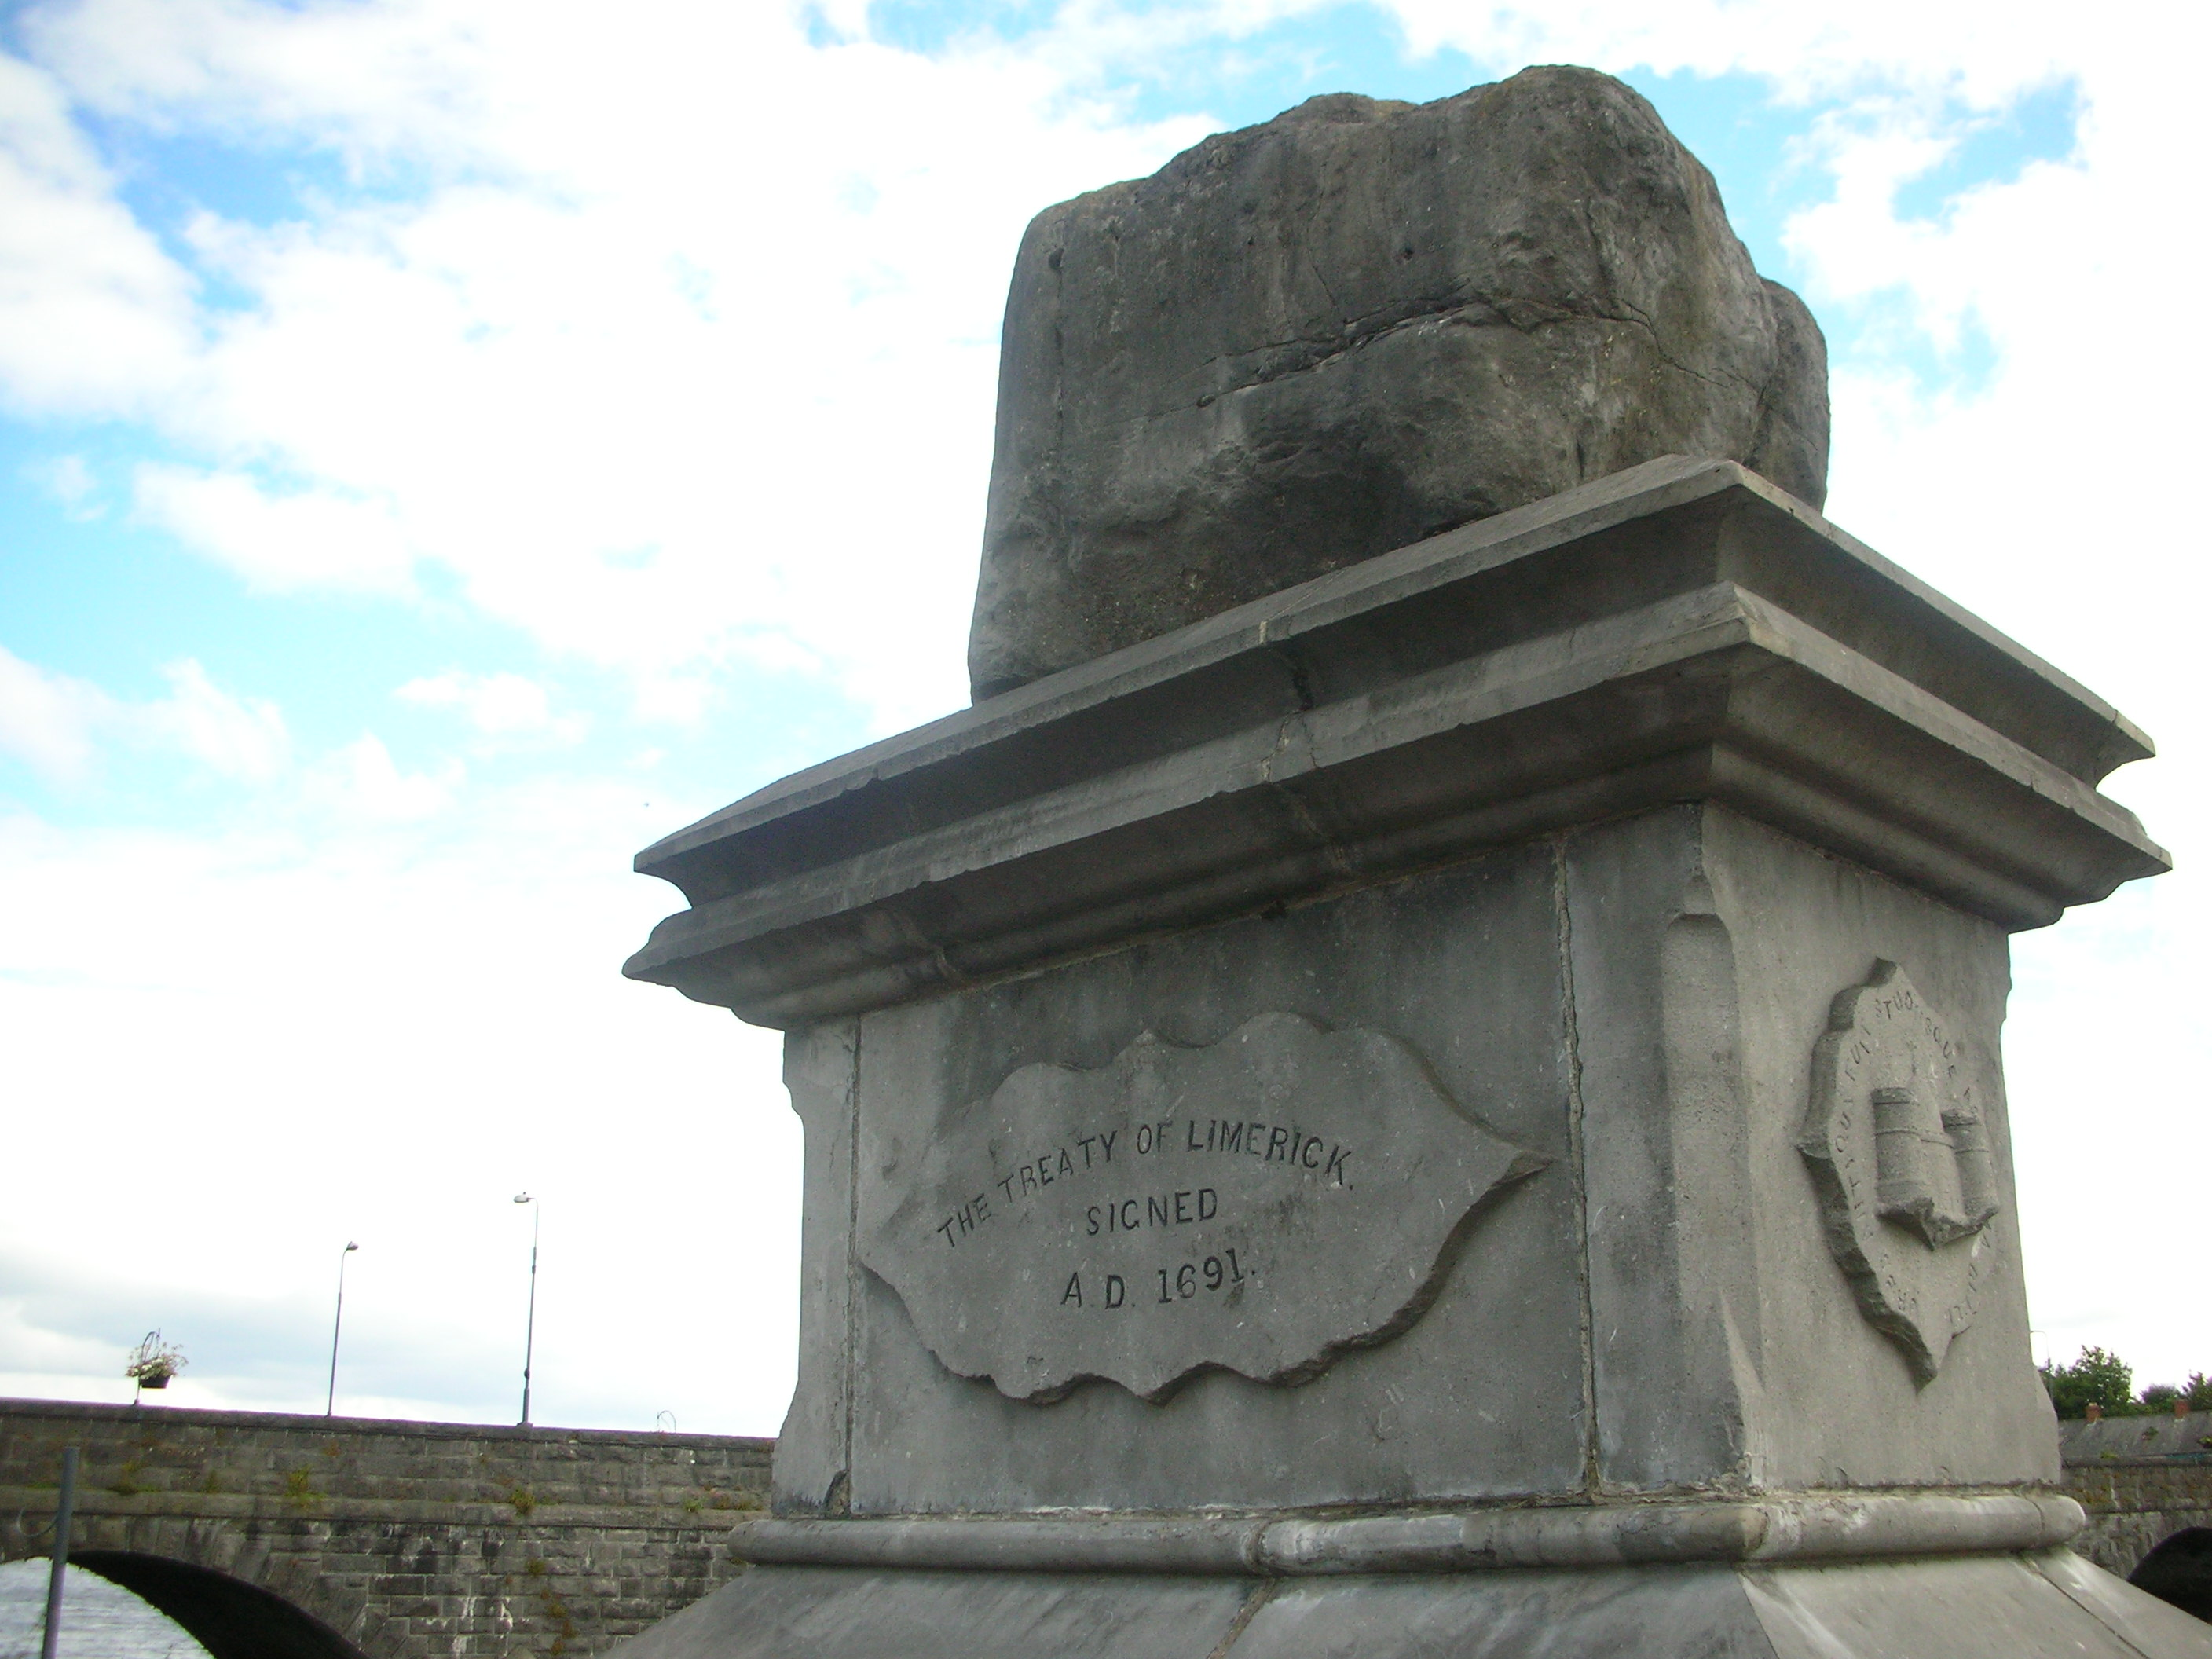 Treaty_stone_of_Limerick.jpg